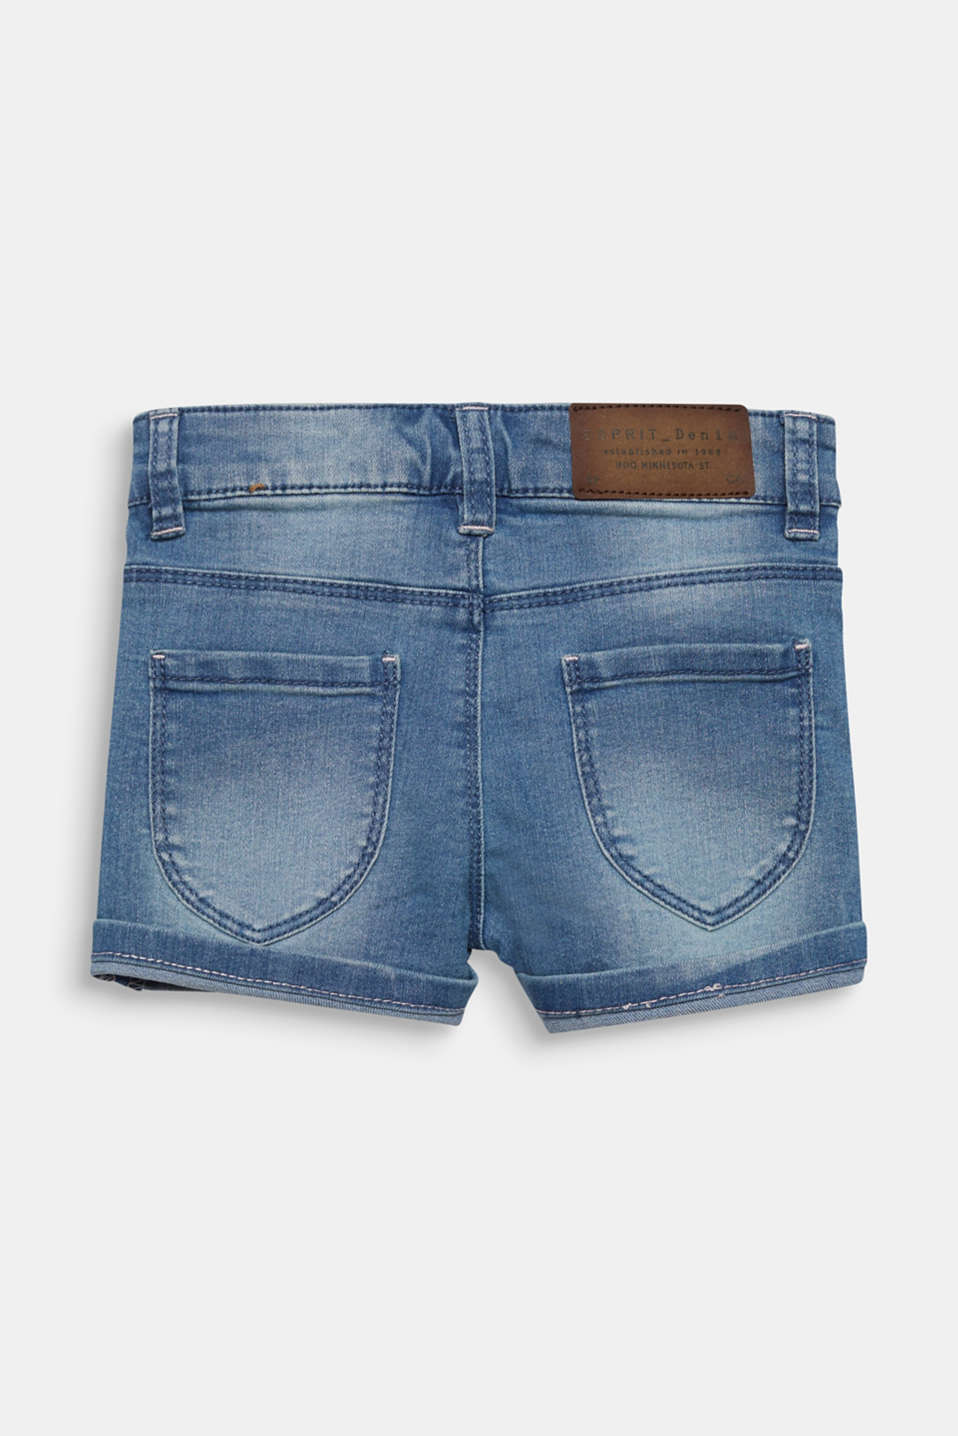 Denim shorts with turn-up hems, adjustable waistband, LIGHT INDIGO D, detail image number 1